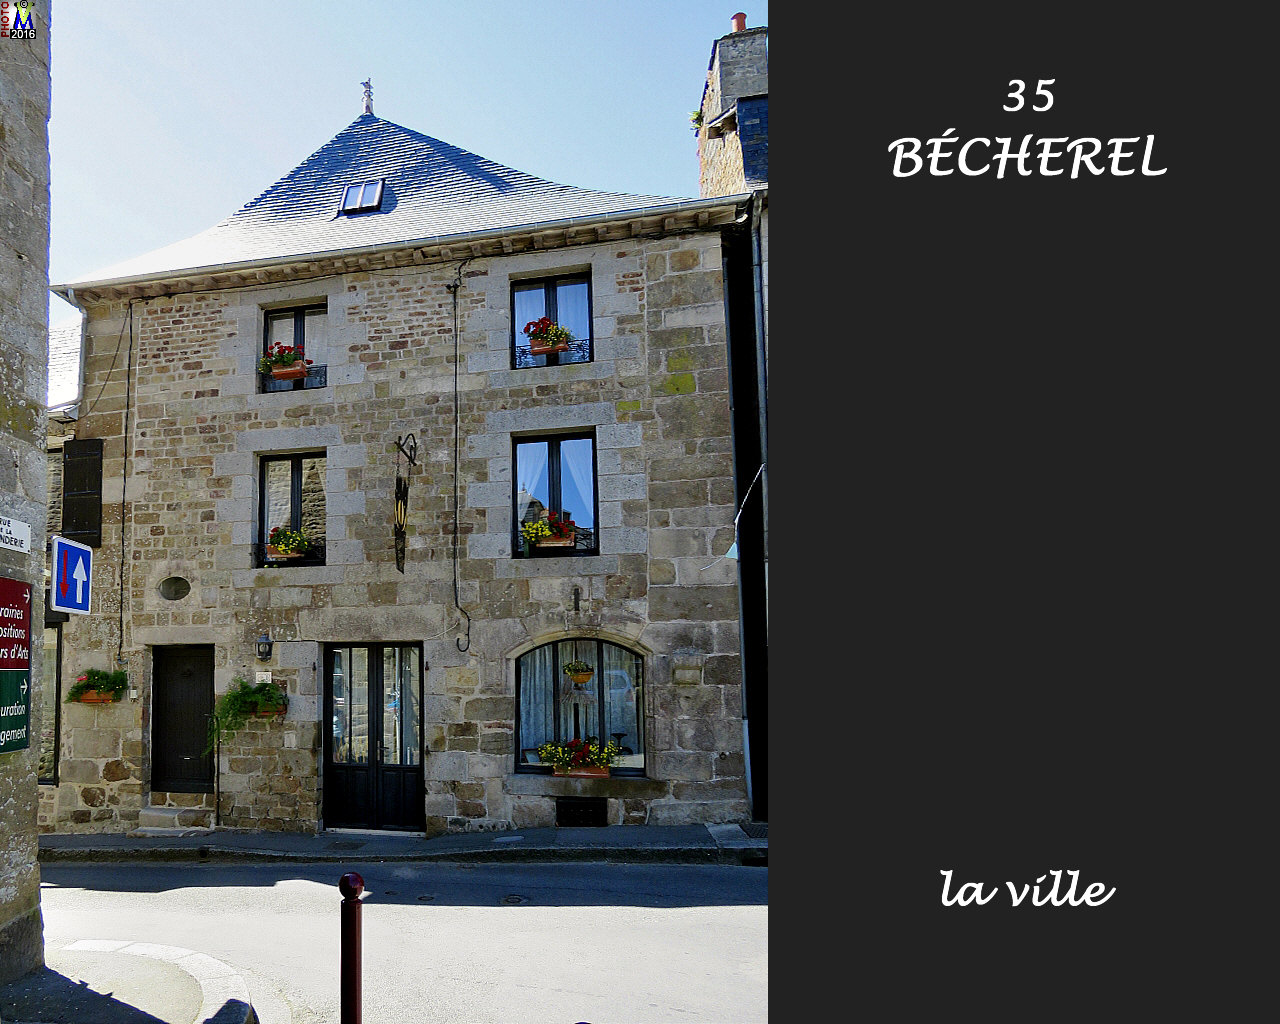 35BECHEREL_ville_118.jpg